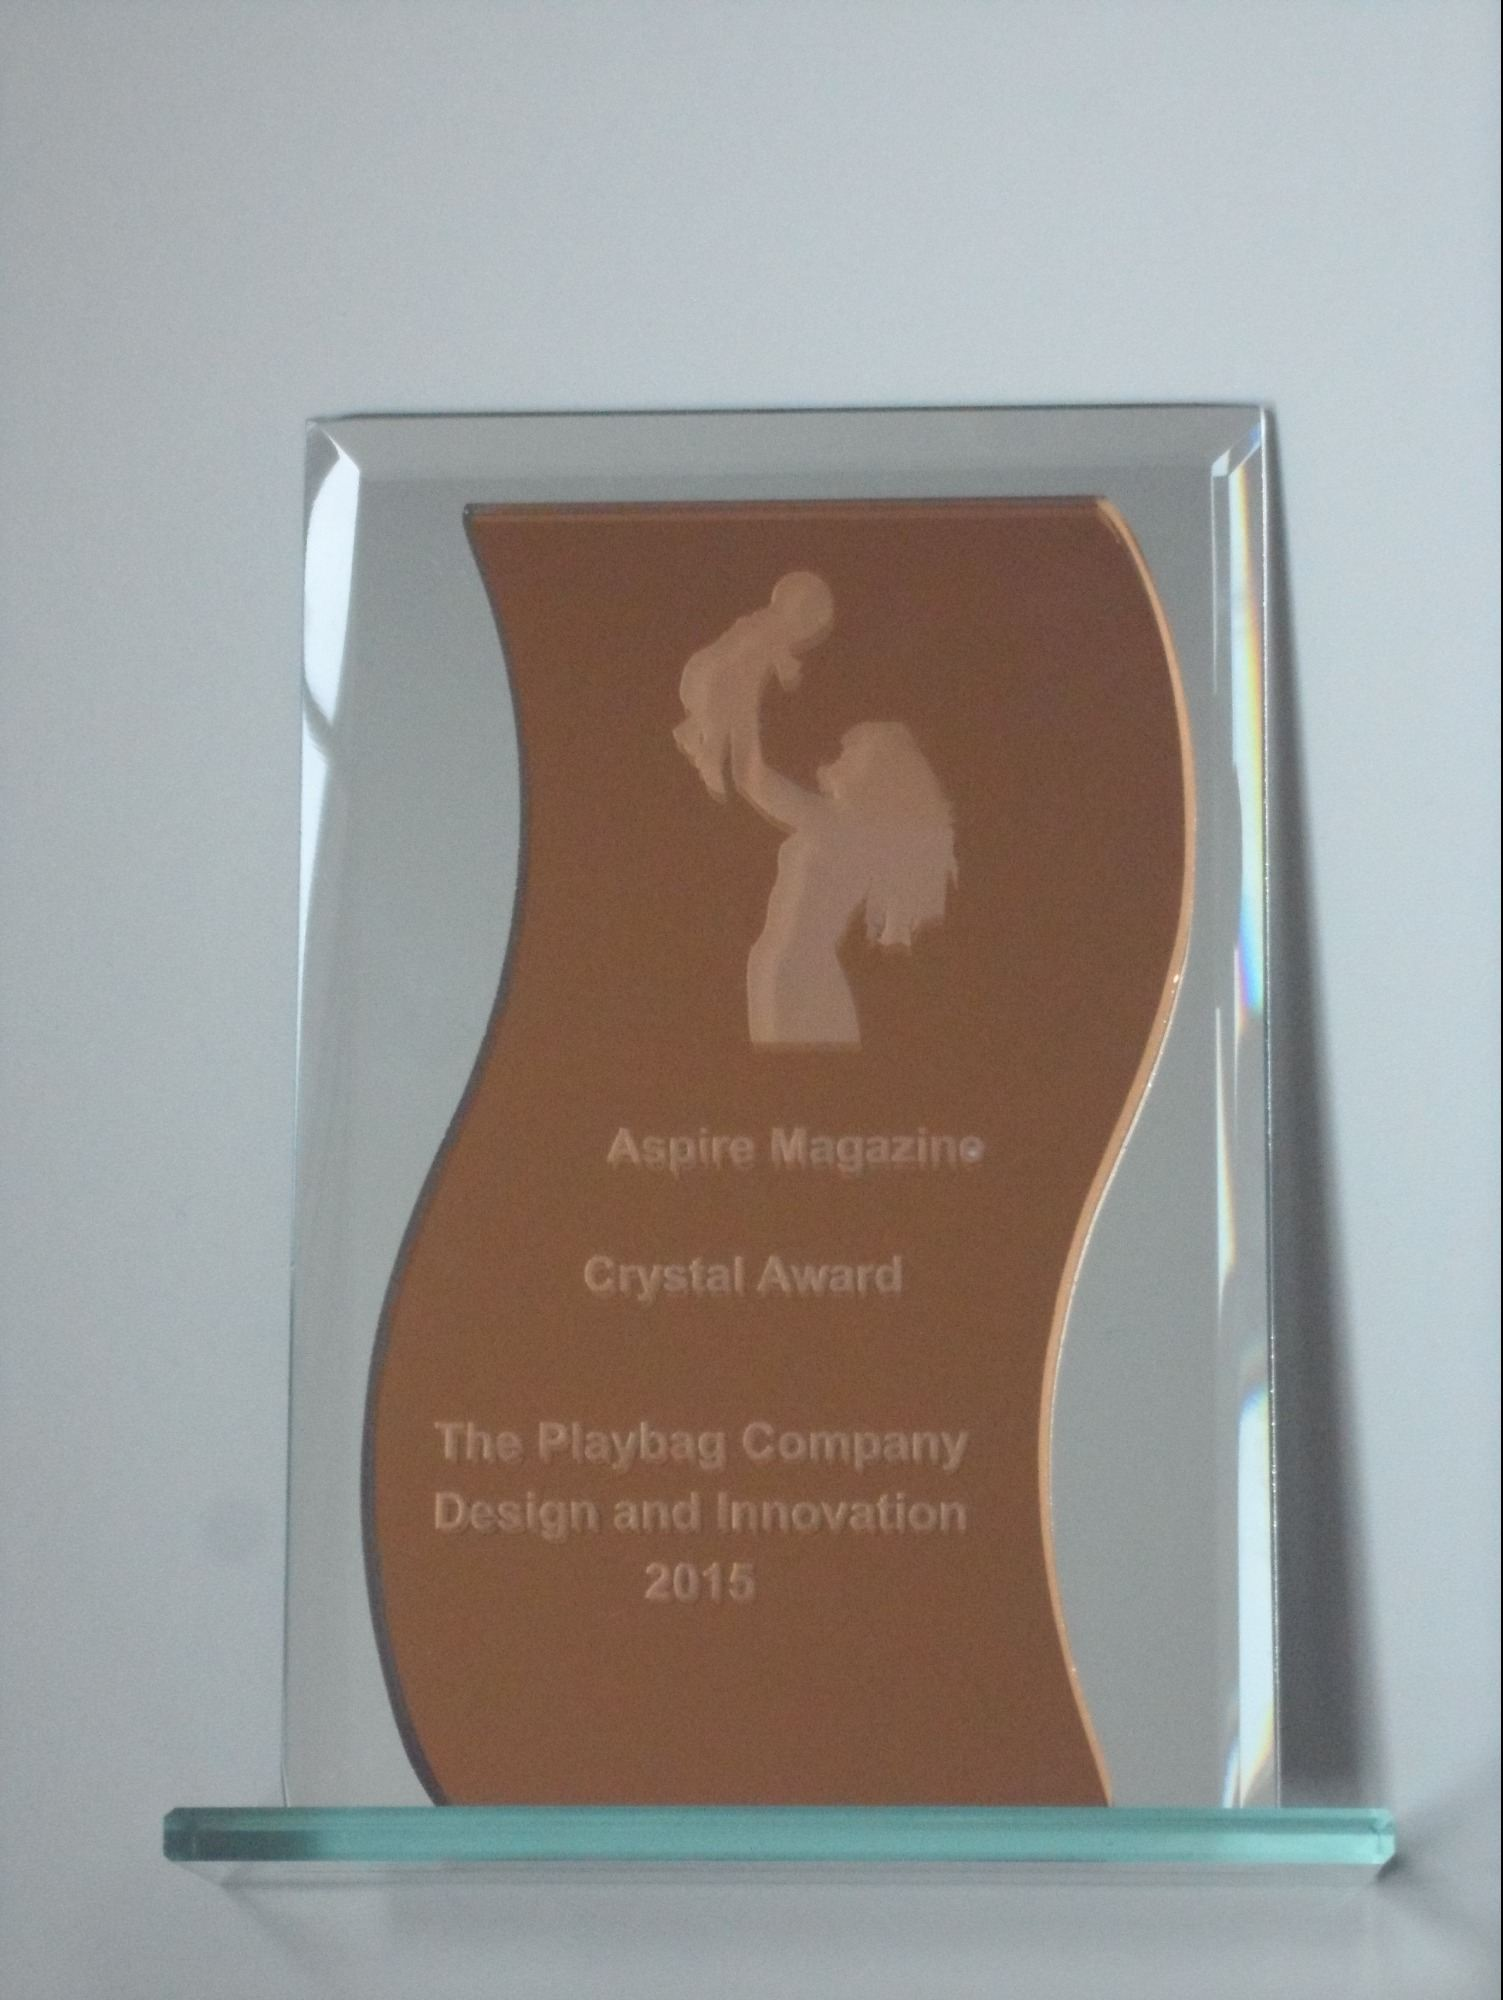 PlayBag Awarded Crystal trophy for Innovation and Design